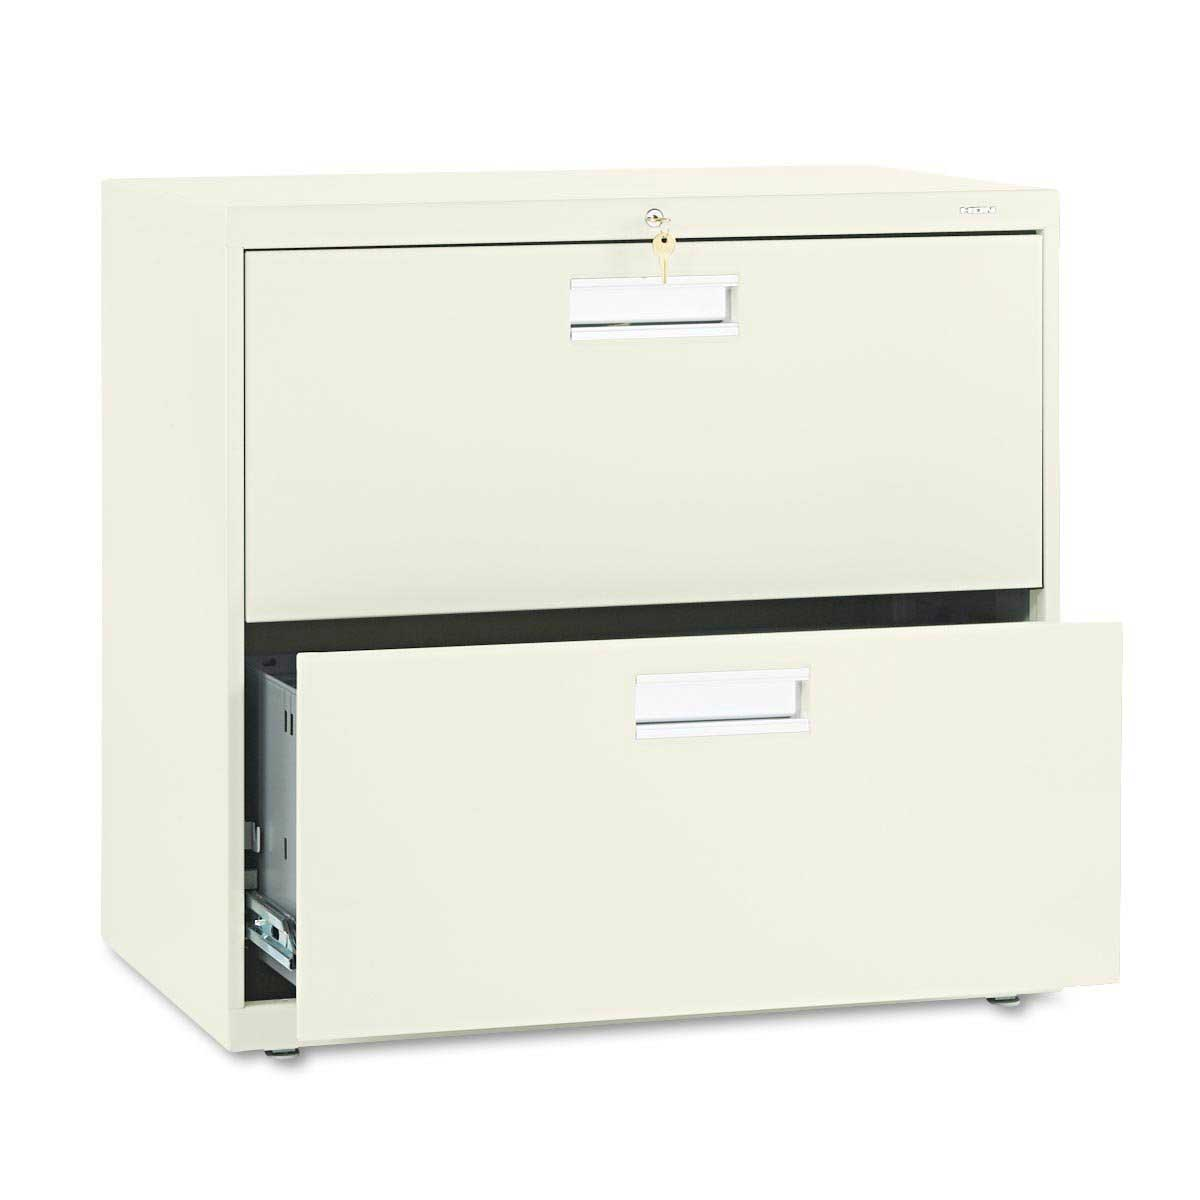 Hon 600 series Lateral Filing Cabinet with 30 Inch Drawers